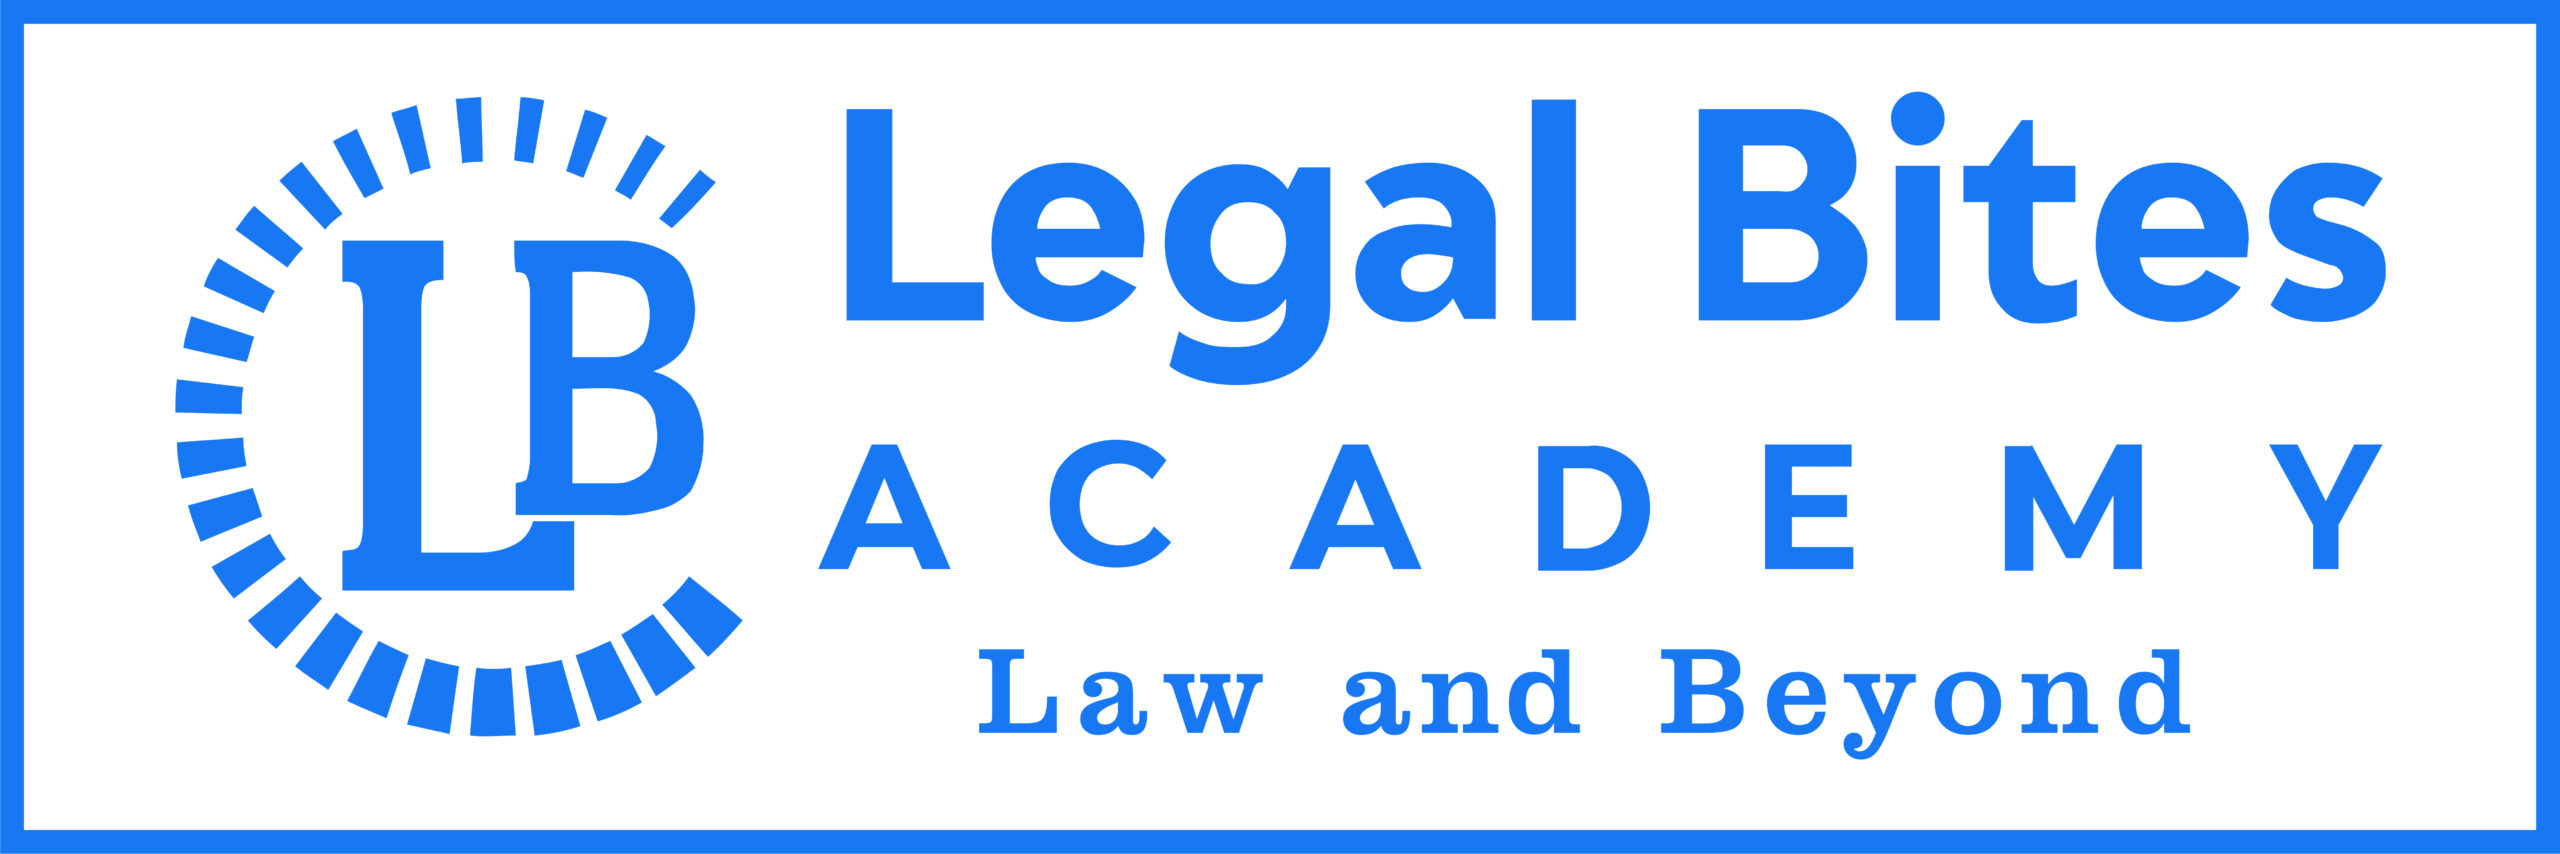 Legal Bites – Law And Beyond